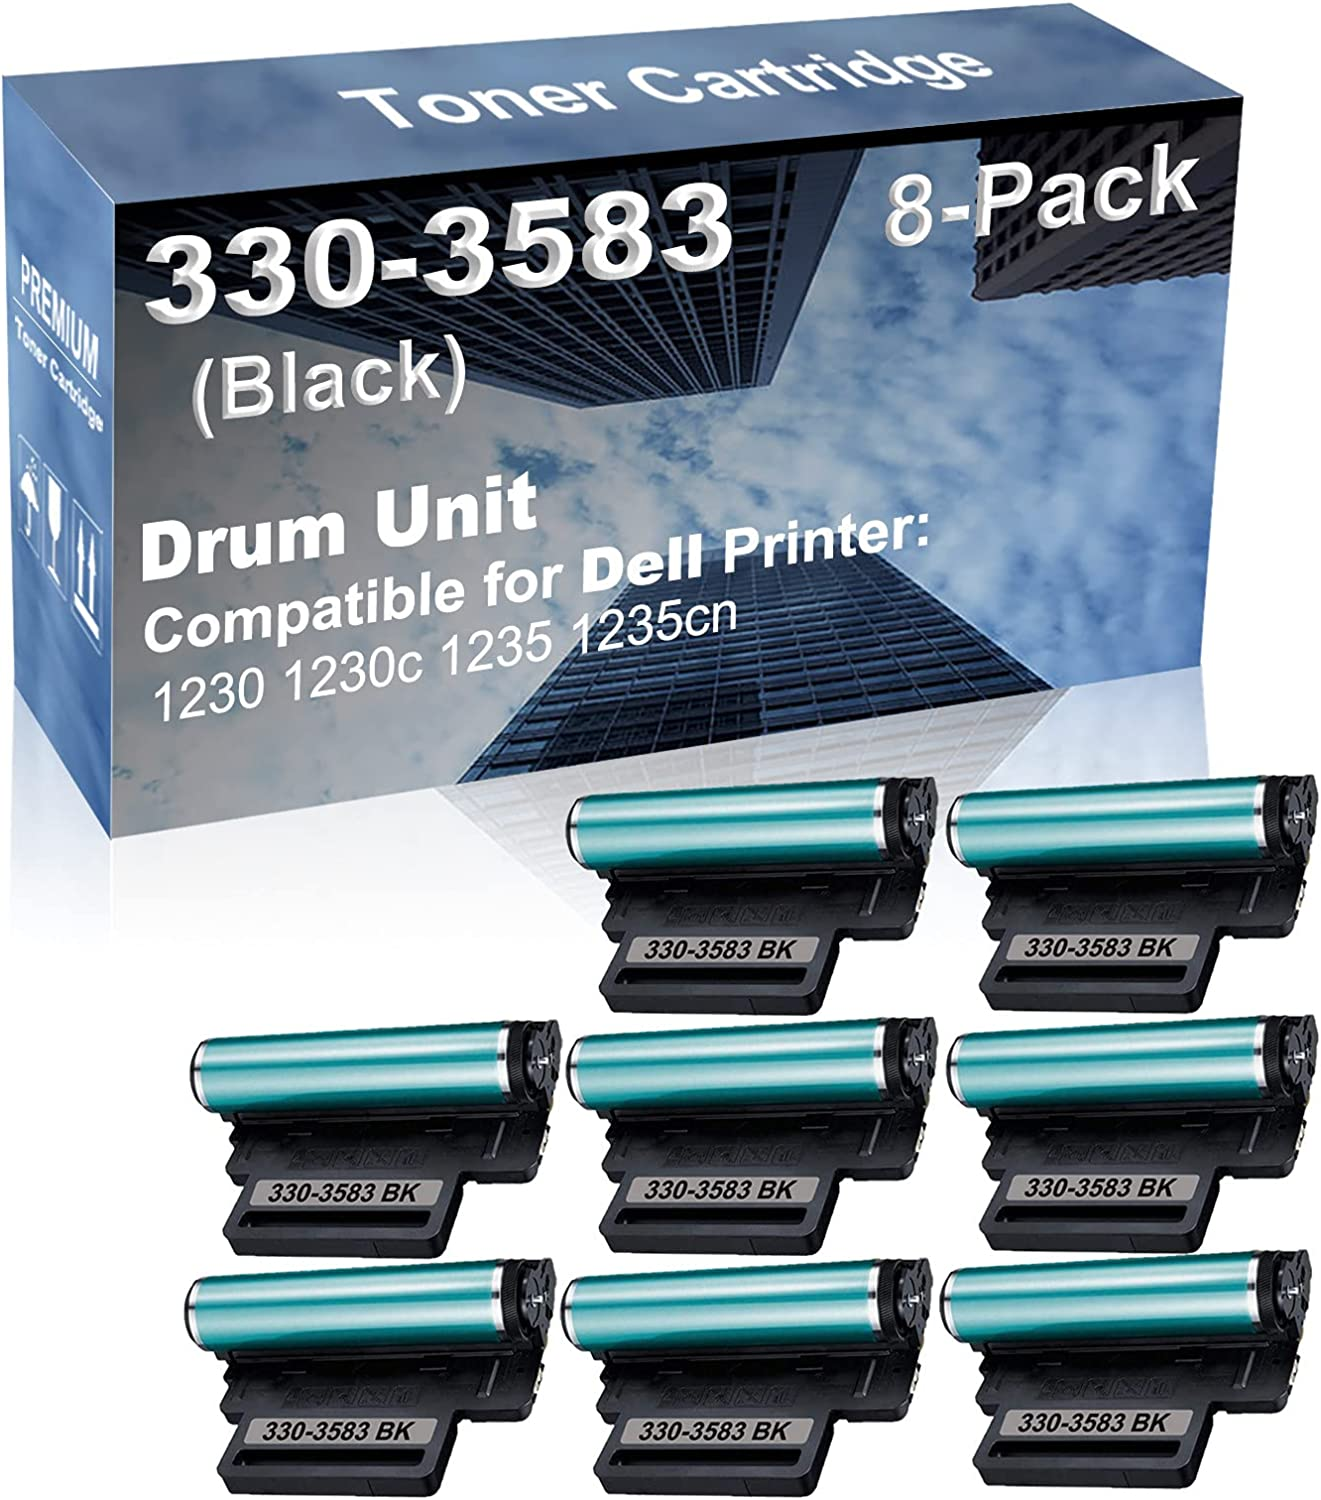 8-Pack Compatible Drum Unit Black for Clearance SALE Limited time Dell 330-358 Regular discount Replacement